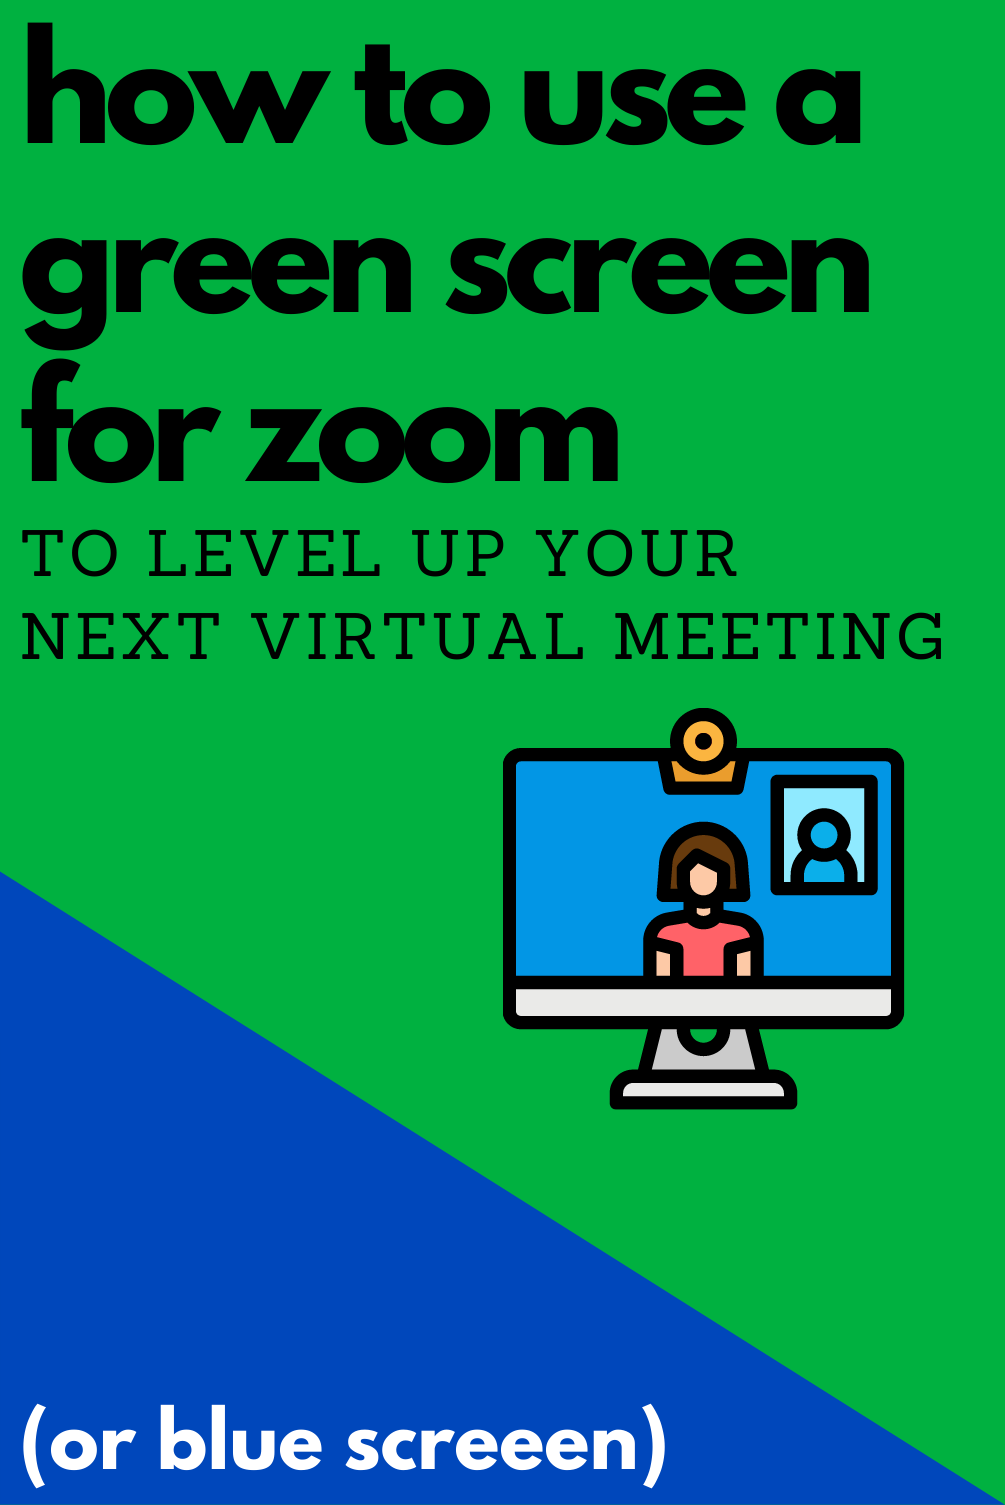 Where To Buy The Best Green Screen For Zoom Meetings Greenscreen Best Green Screen Screen